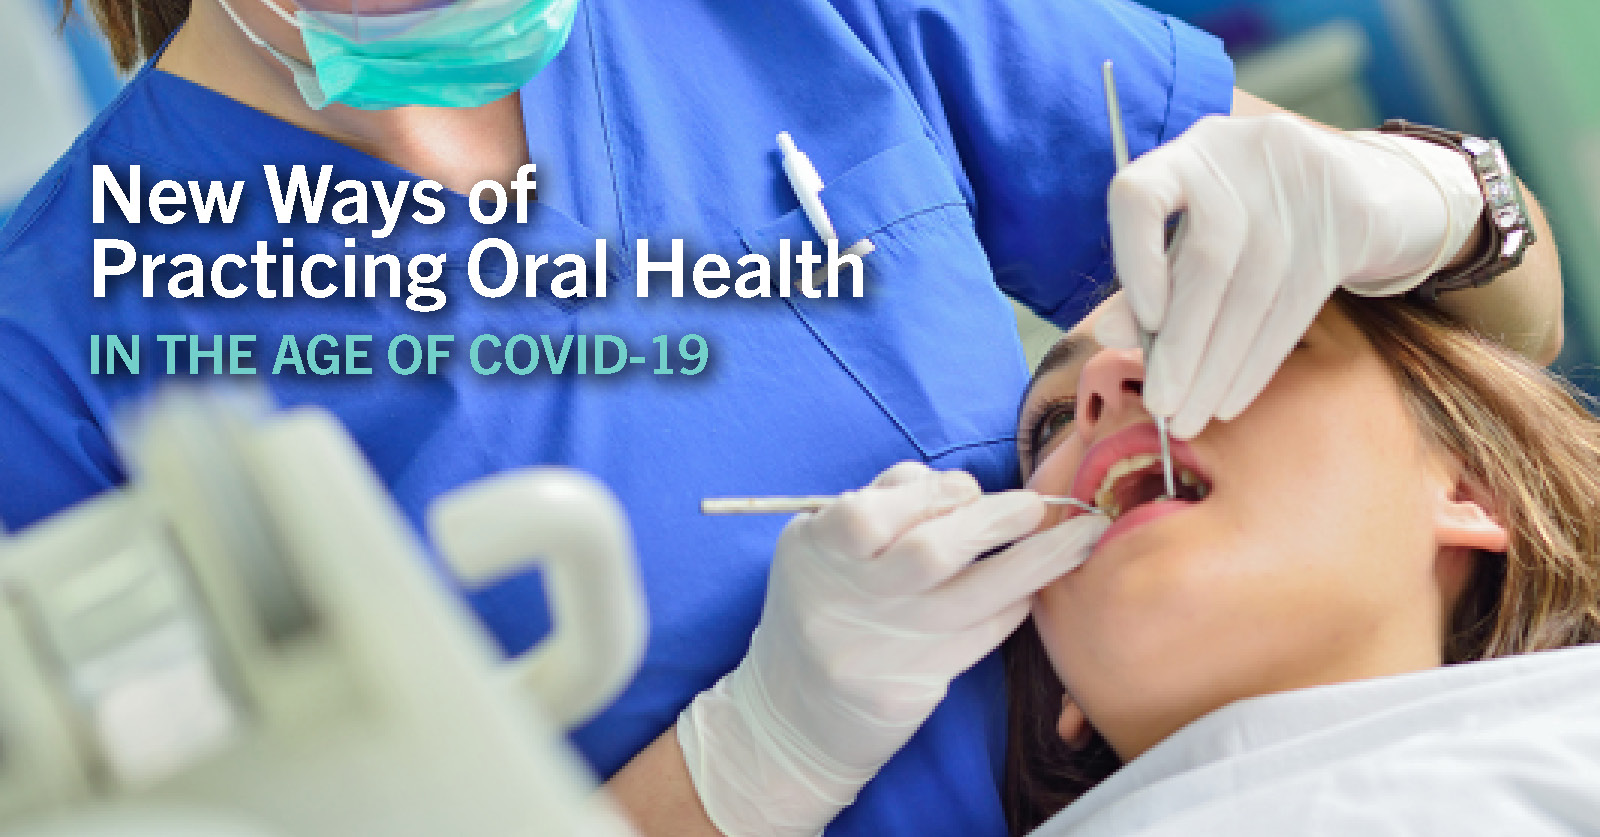 New Ways of Practicing Oral Health in the Age of COVID-19